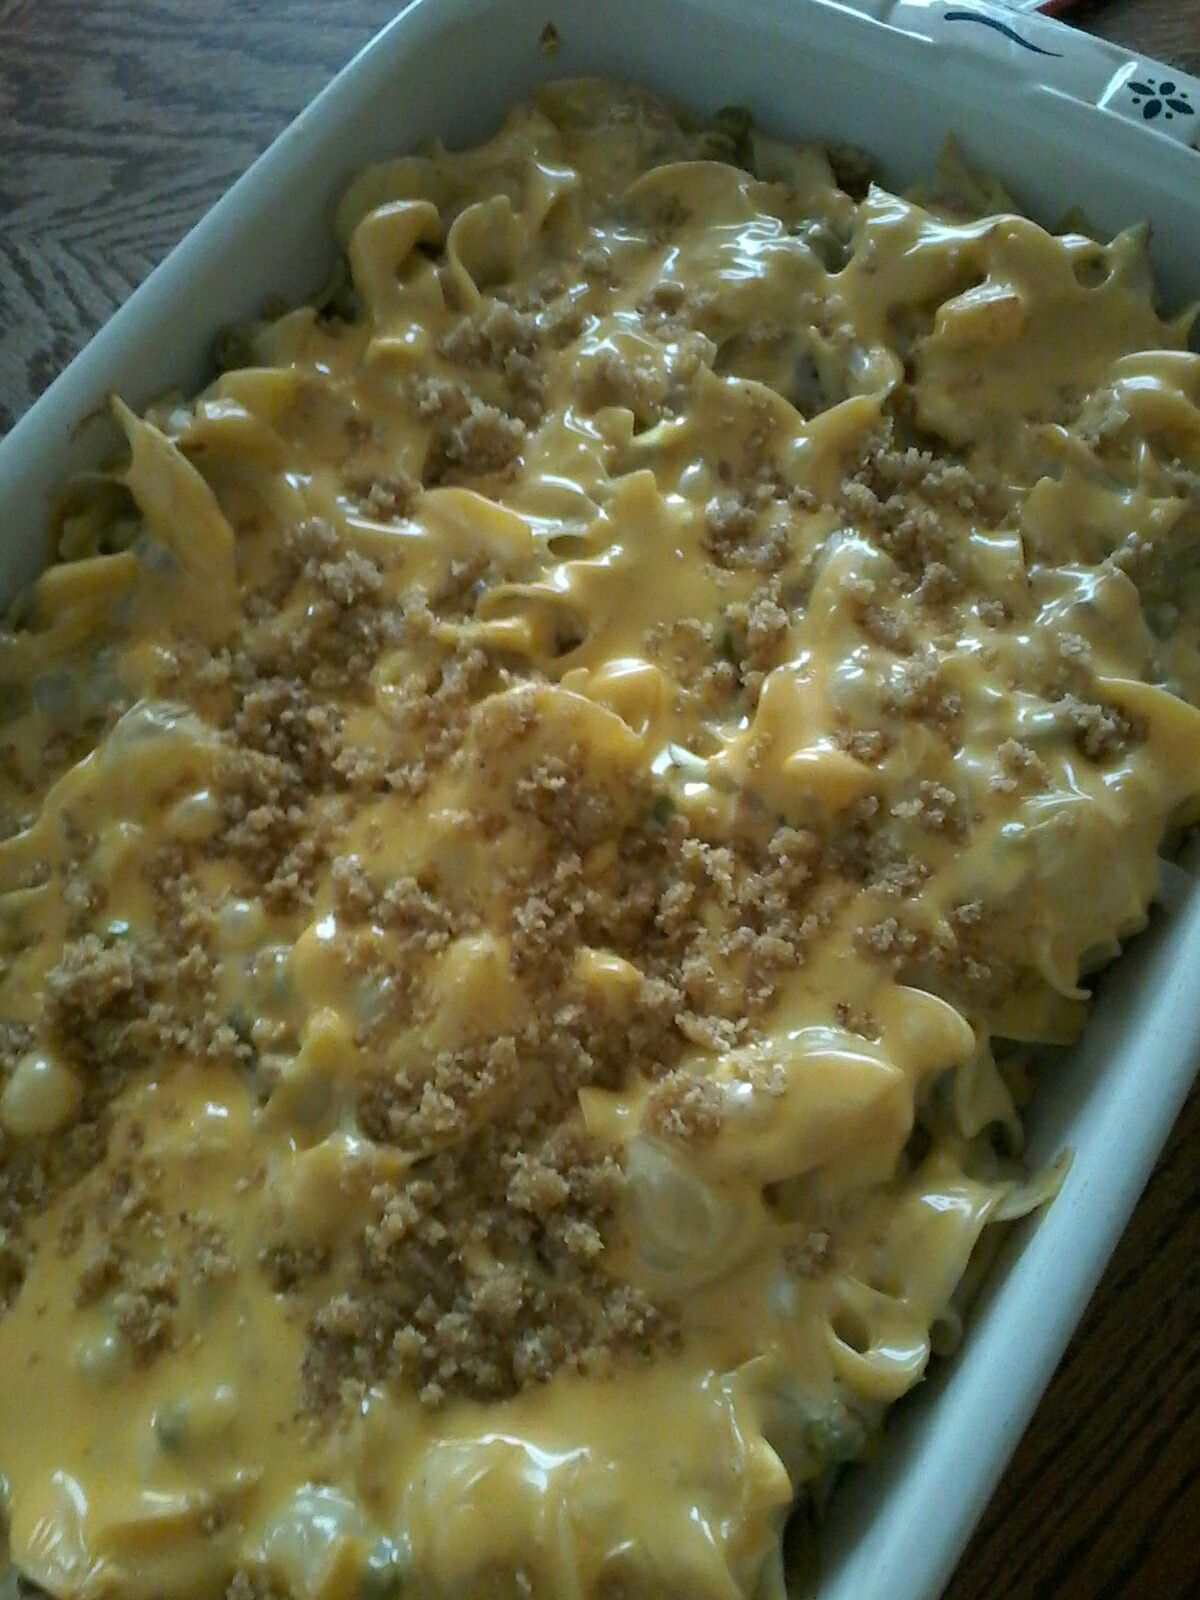 tuna casserole 16 oz. egg noodles, cooked * 2 cans tuna (5